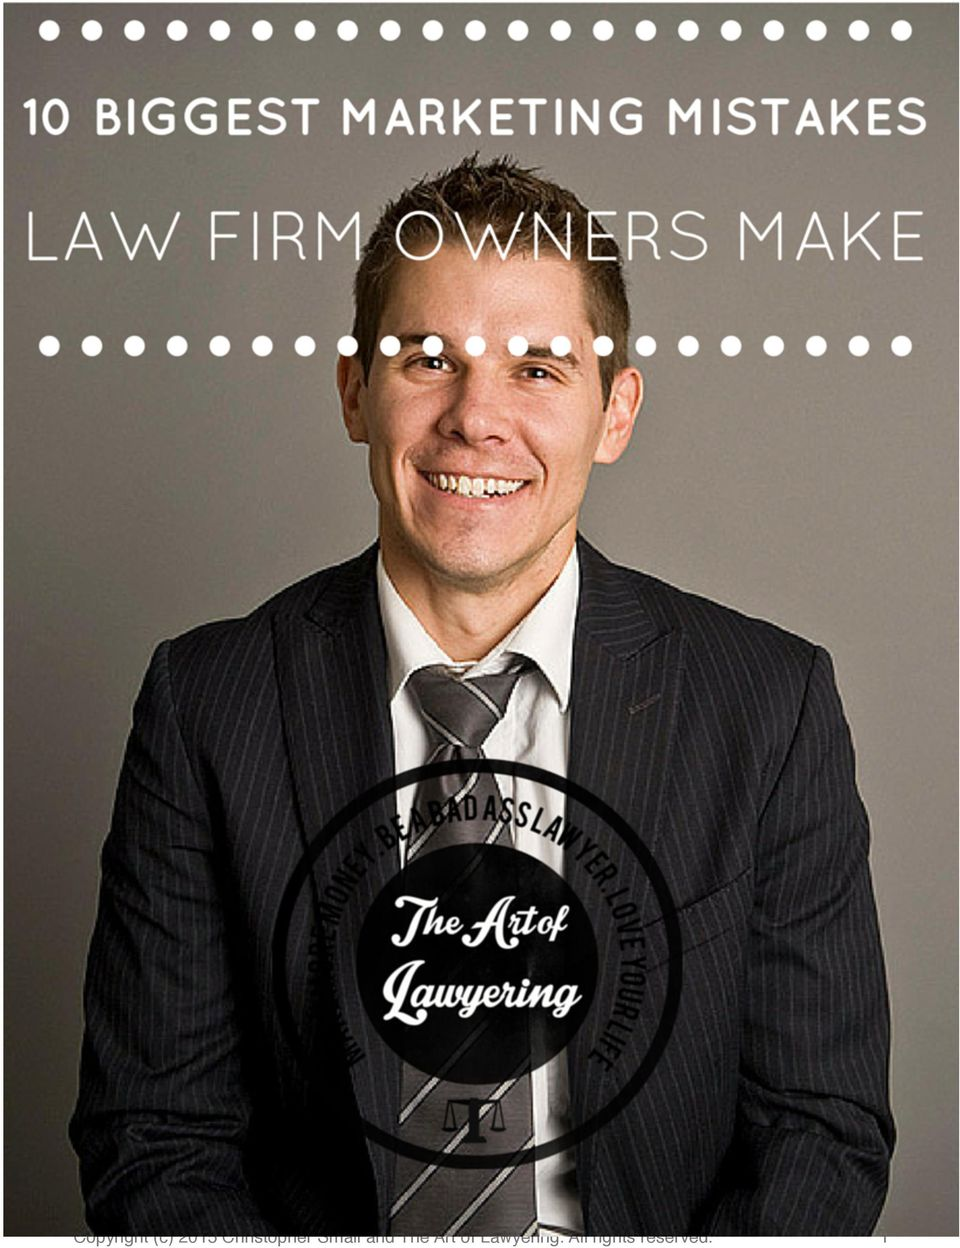 The Art of Lawyering.